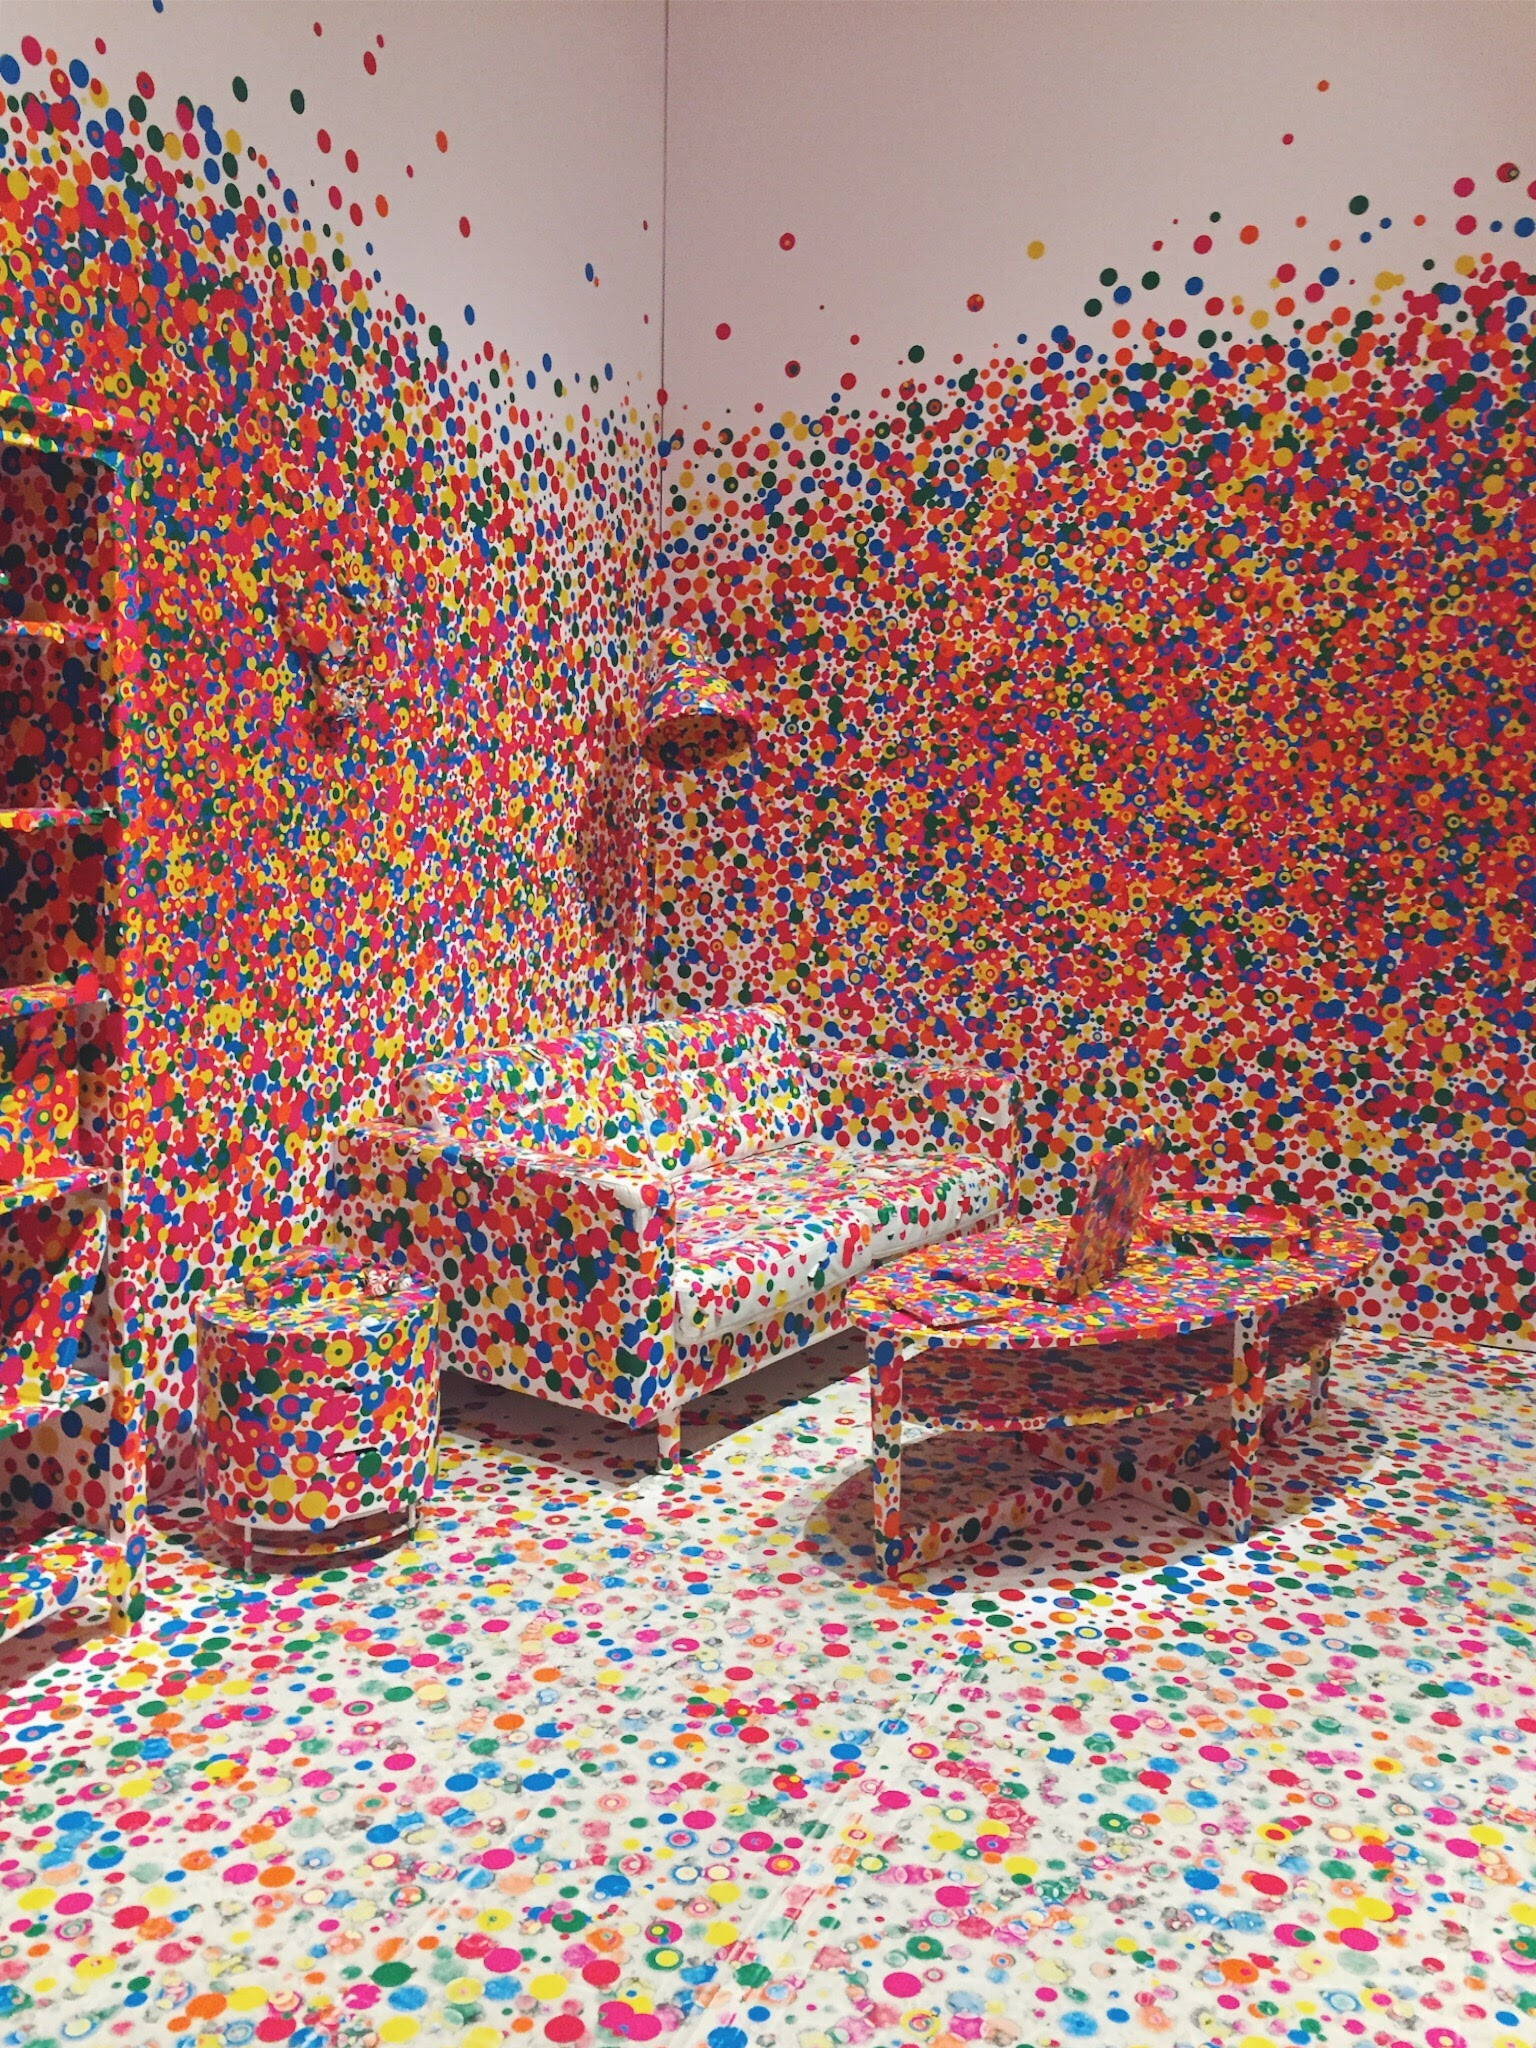 Yayoi Kusama, The Obliteration Room  (2002), is an all-white replica of a traditional domestic setting. Upon entering, visitors are invited to cover every surface of the furnished gallery with multi-coloured polka dot stickers, gradually obliterating the entire space in colour.